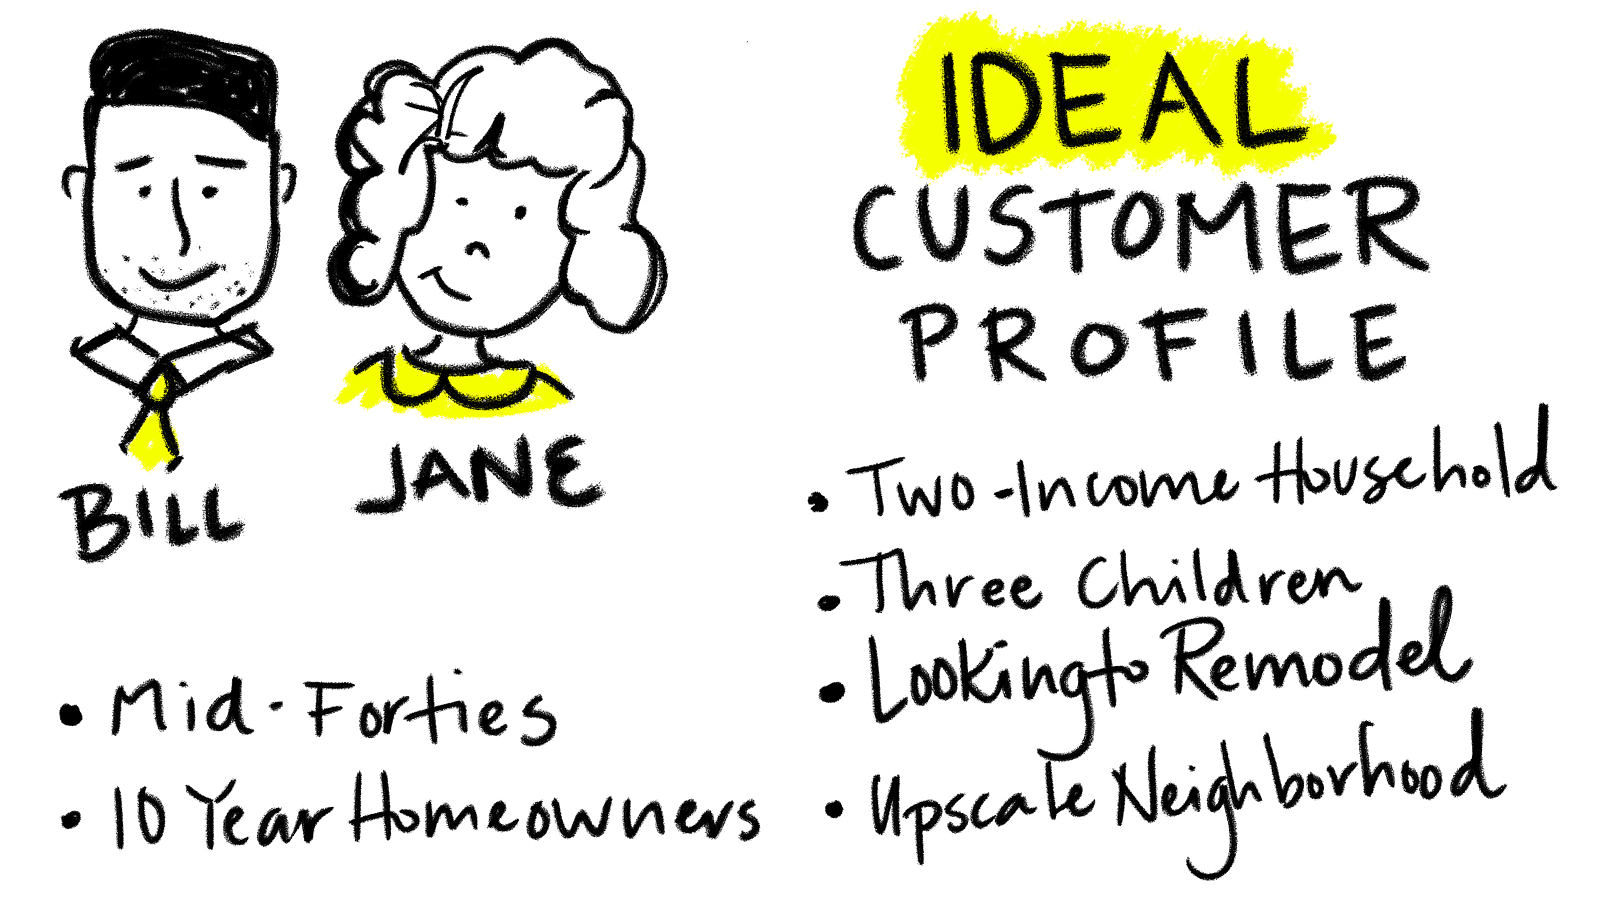 ideal customer profile for contractors